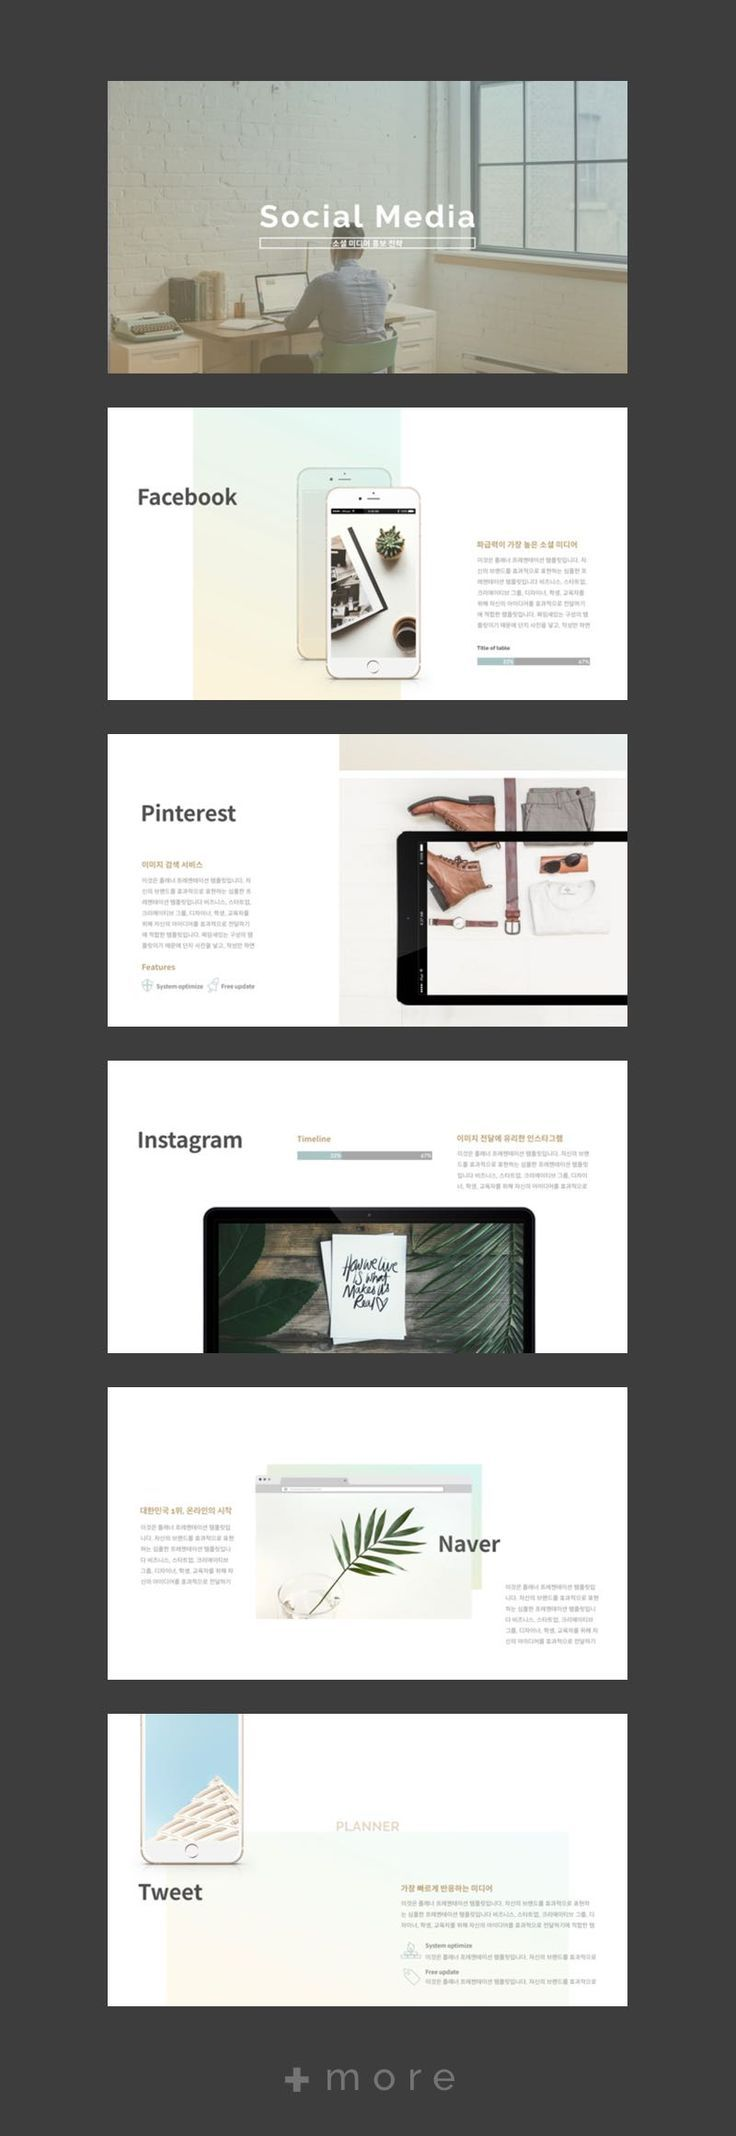 ppt planner presentation template ppt keynote ppt planner presentation template ppt keynote planning business marketing powerpoint powerpoint templates pinterest apresentao toneelgroepblik